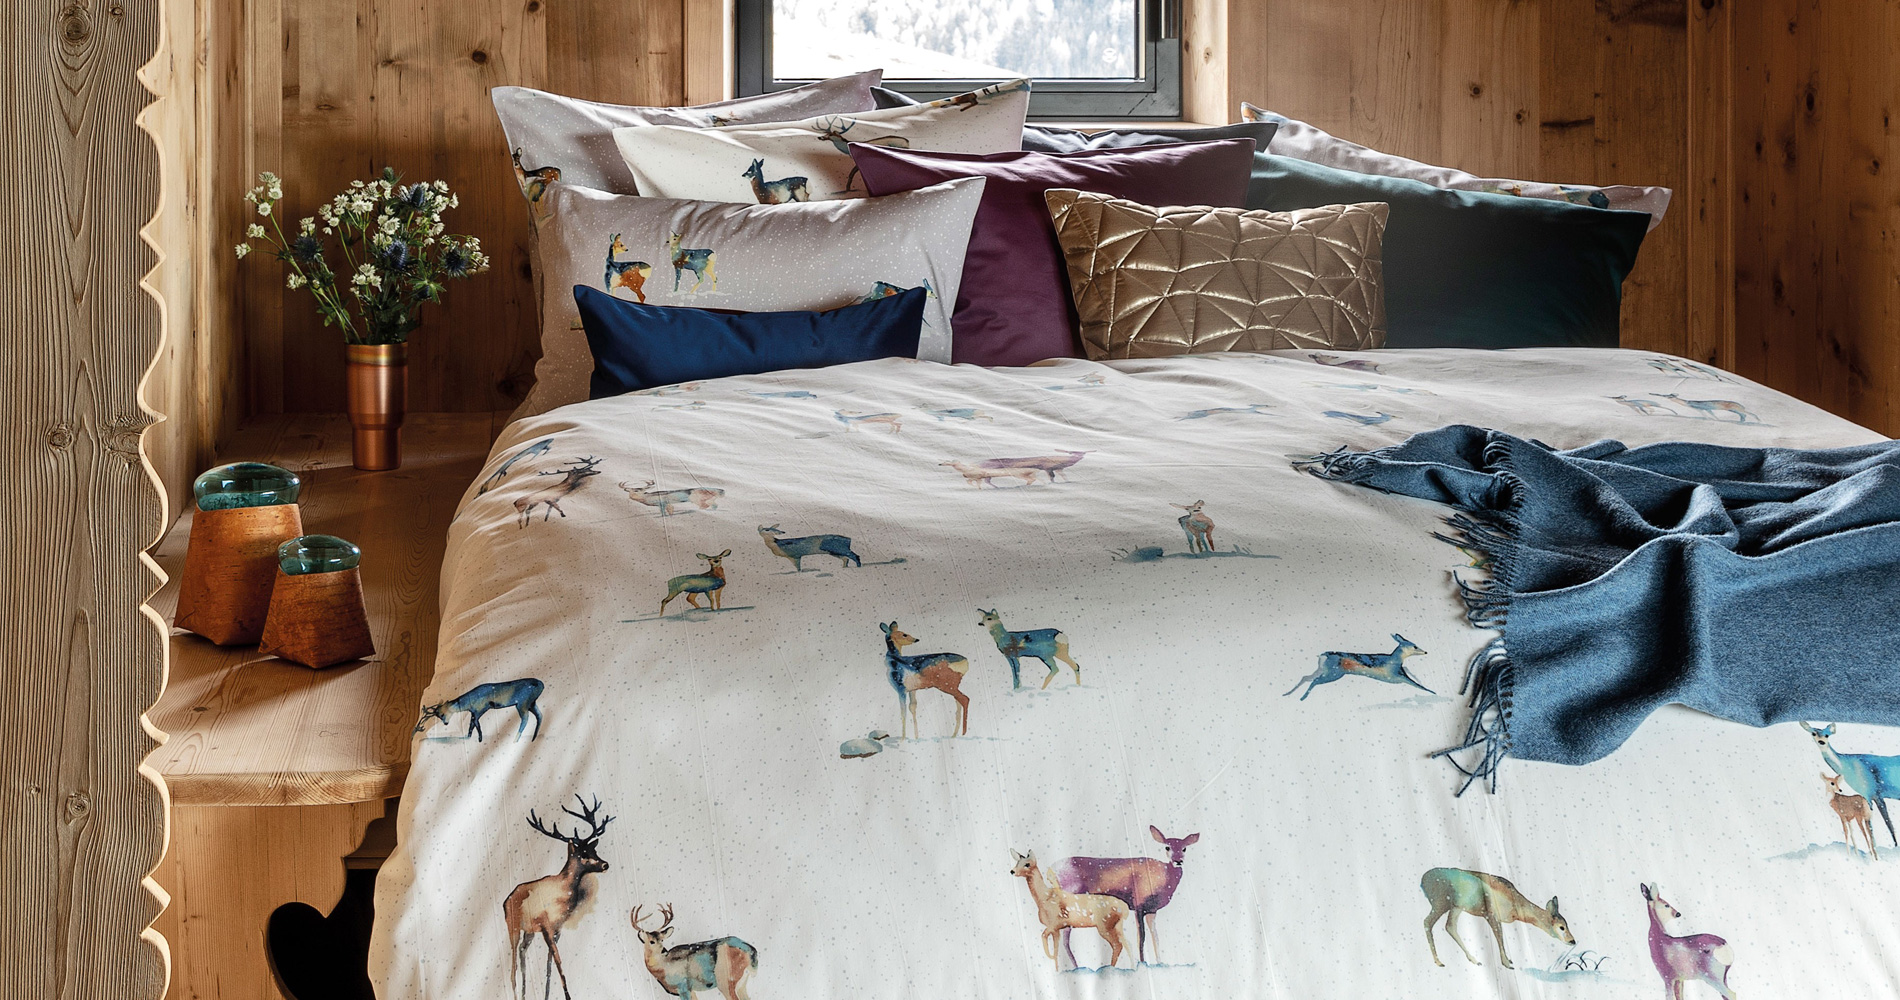 Marc Leopold Onlineshop for bed linen and home textiles of exclusive manufacturer